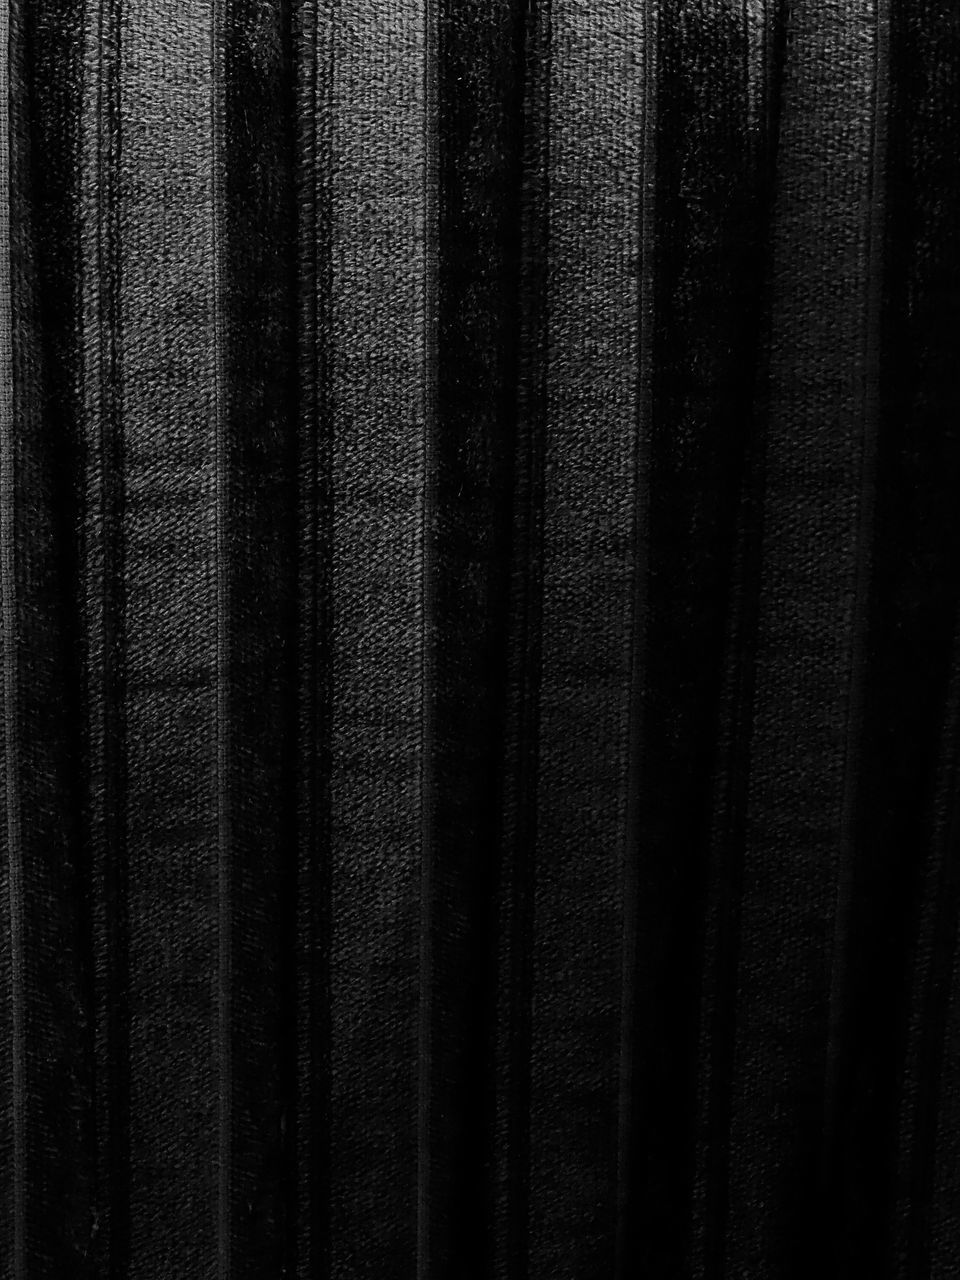 backgrounds, full frame, no people, fabric, curtain, close-up, textured, textile, indoors, day